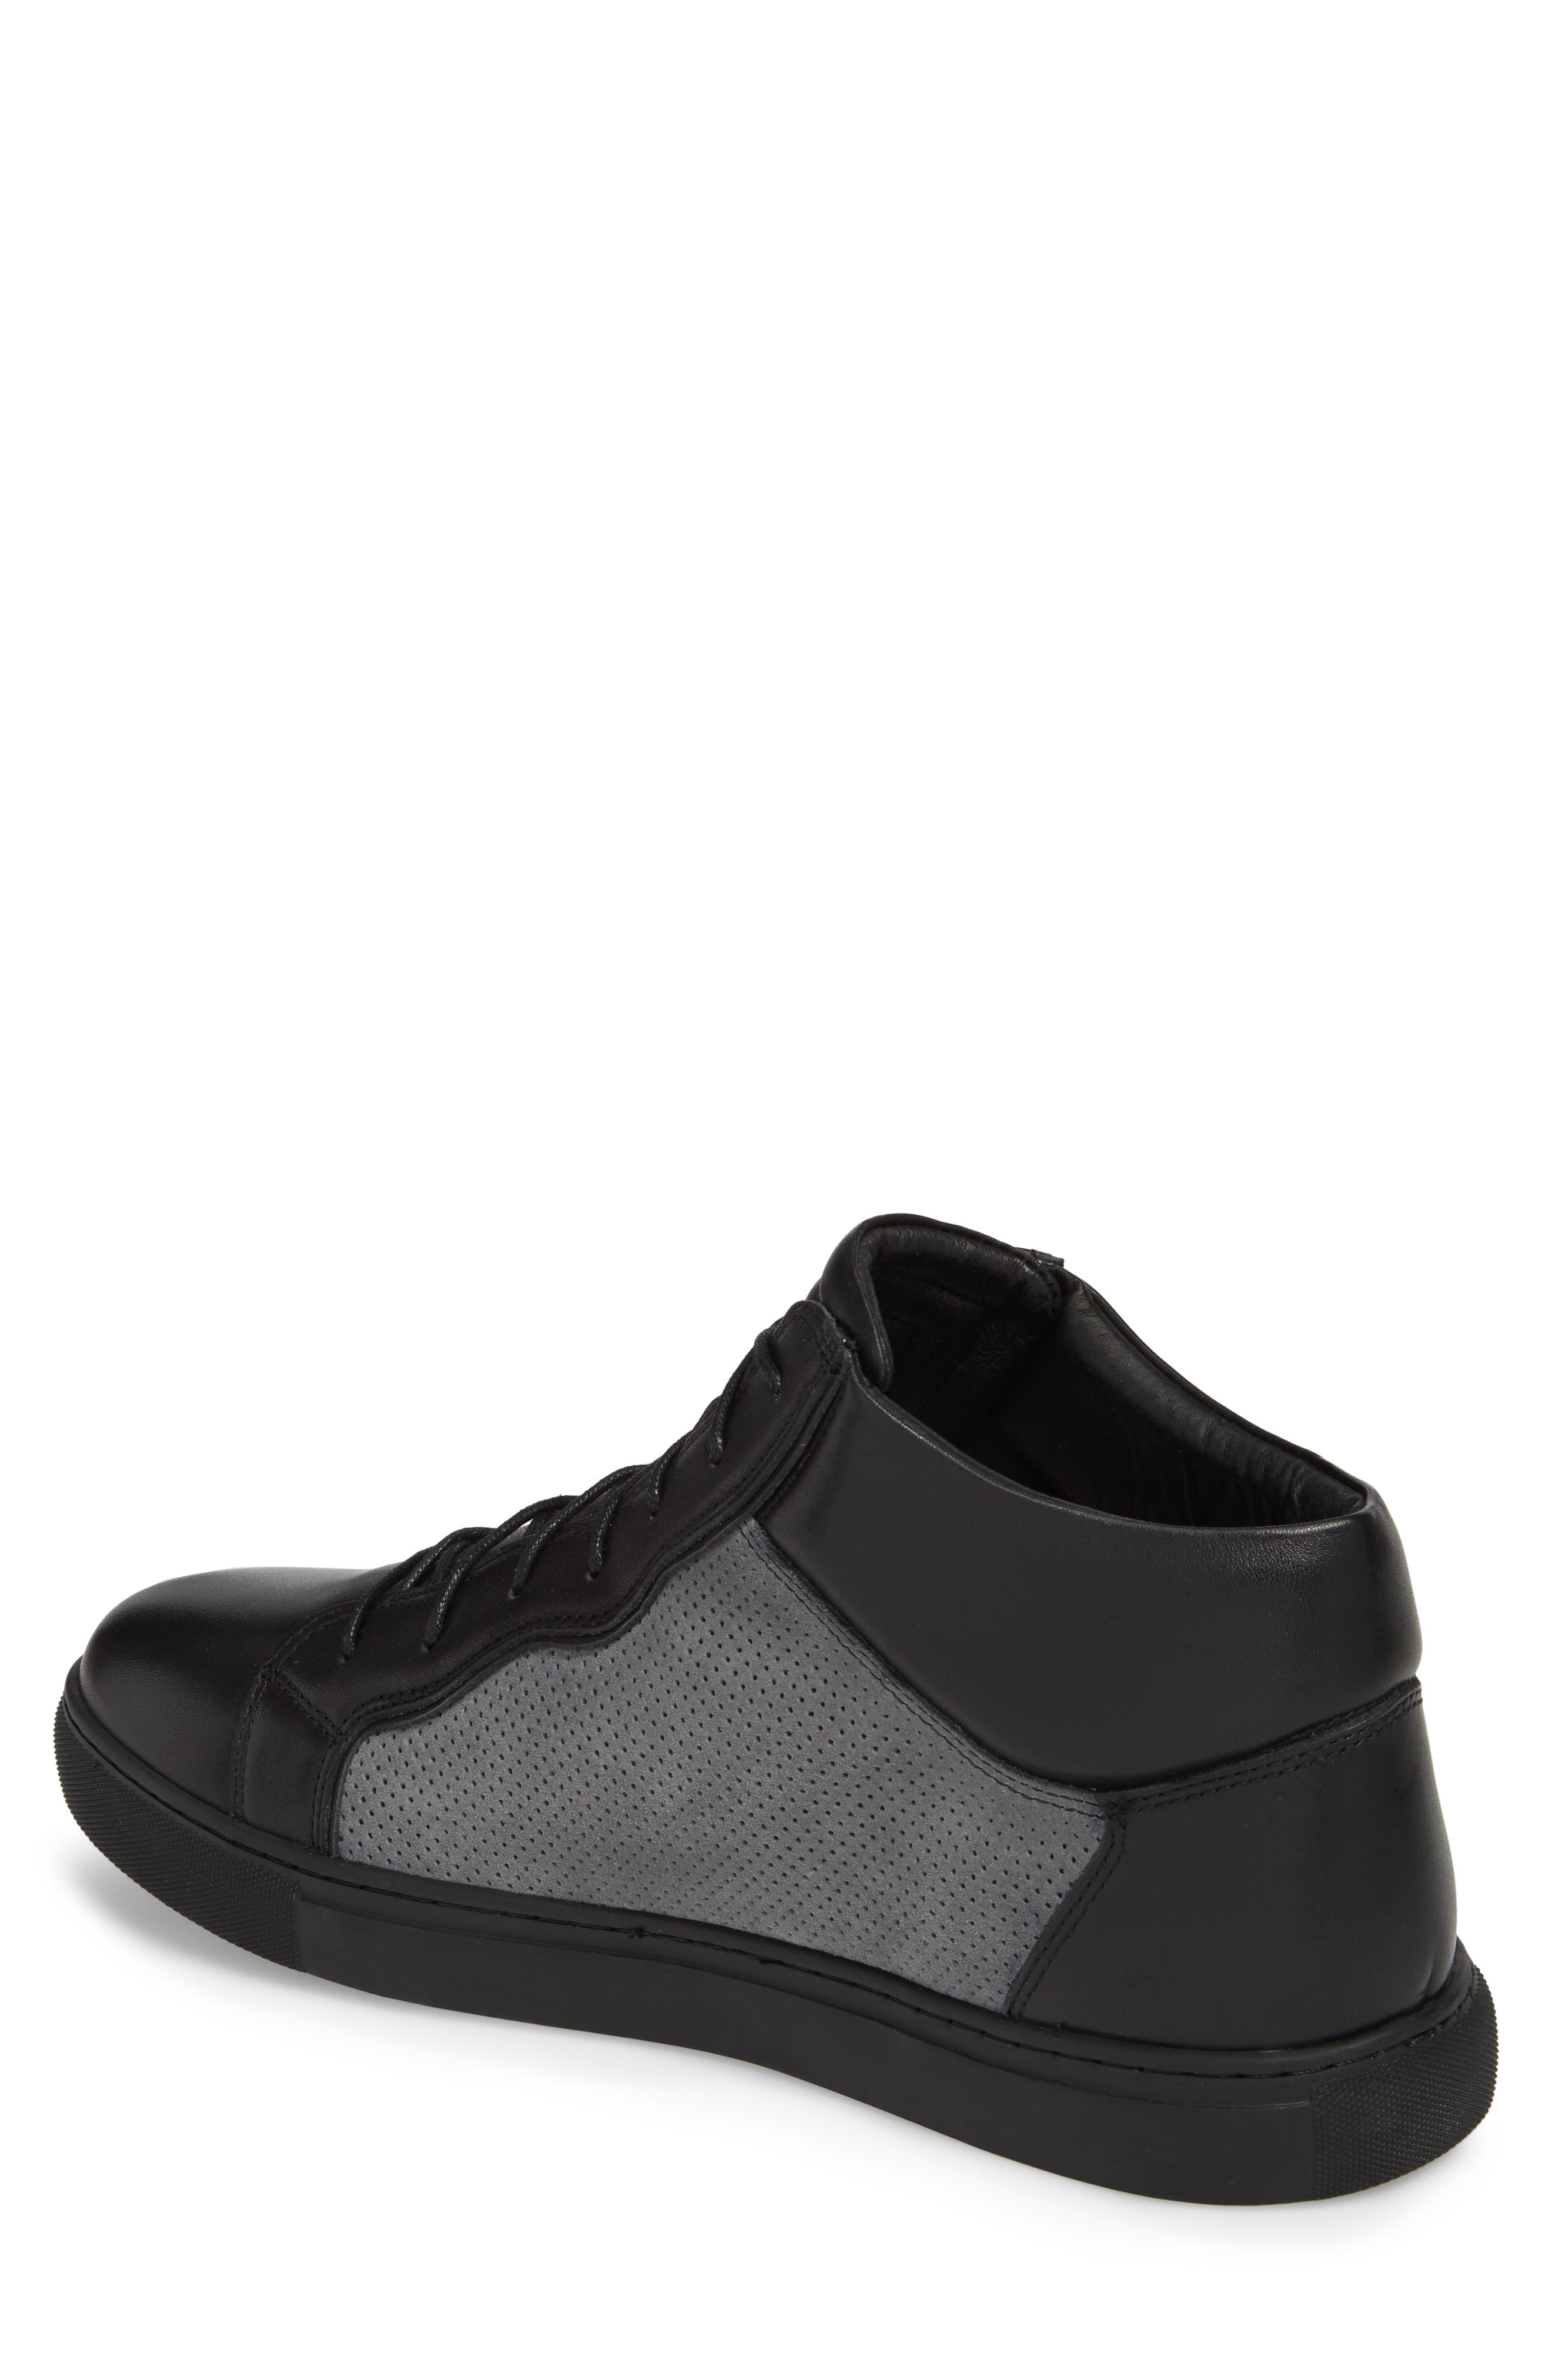 Twist Perforated High Top Sneaker,                             Alternate thumbnail 2, color,                             BLACK LEATHER/ SUEDE